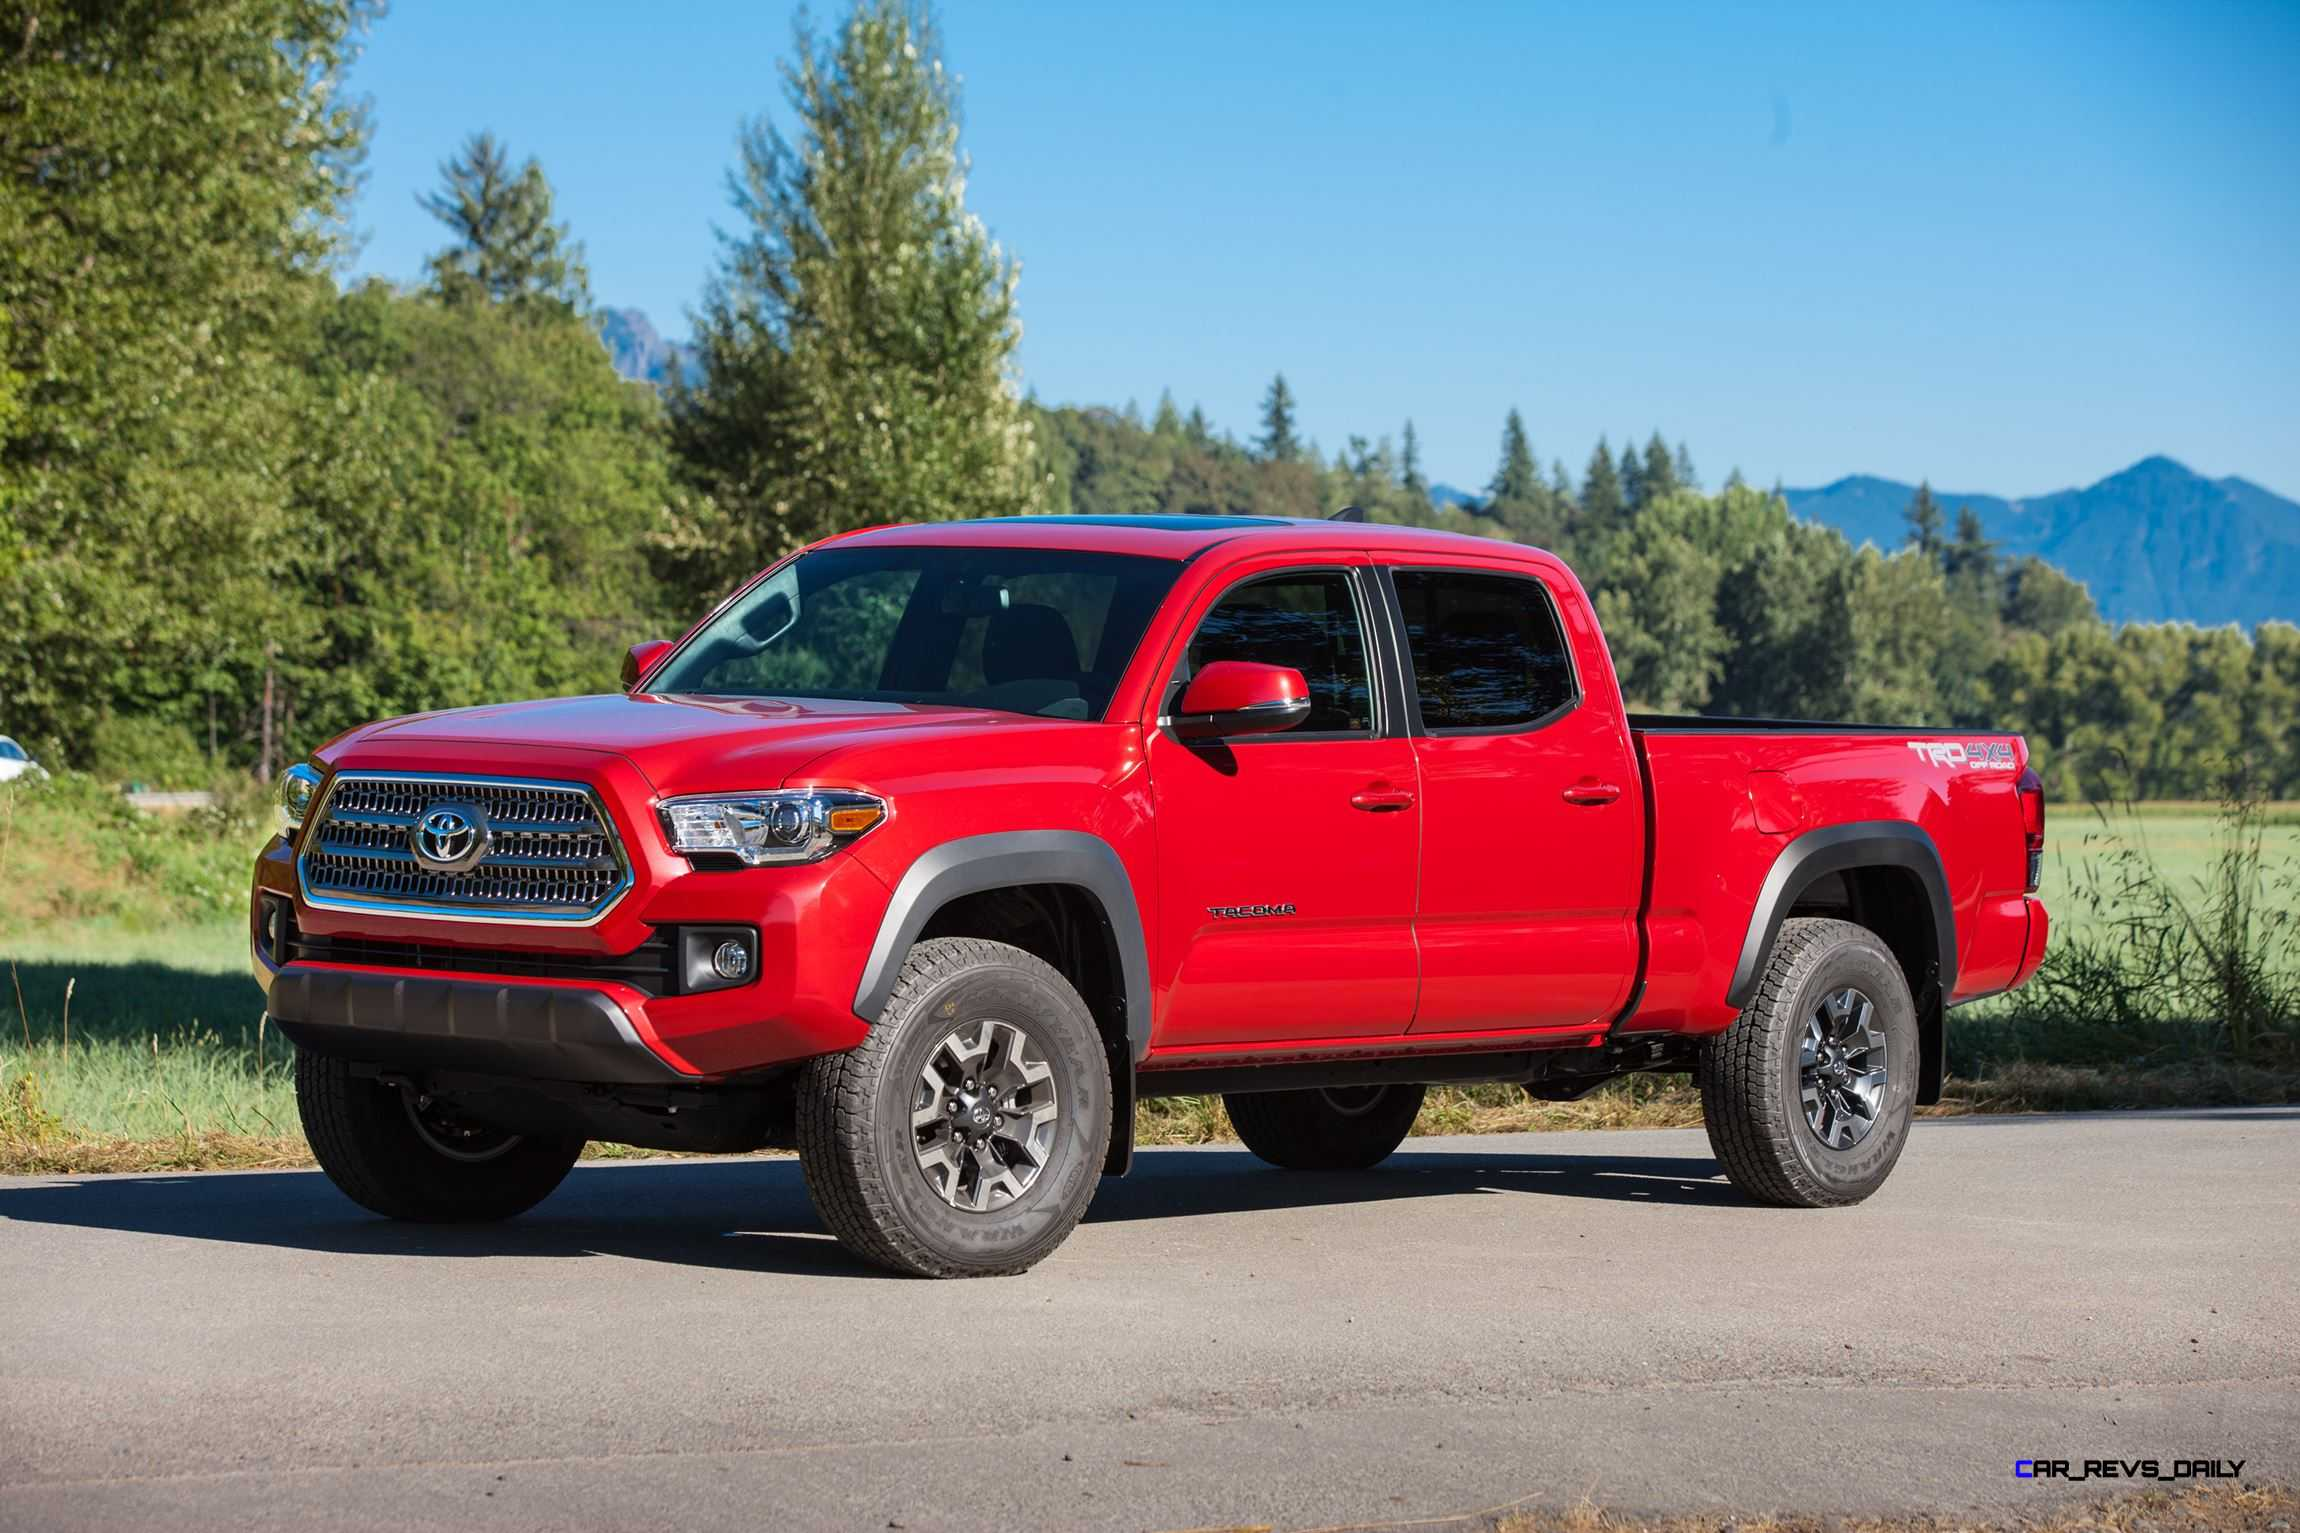 2016 toyota tacoma pricing and tech specs ahead of mid october. Black Bedroom Furniture Sets. Home Design Ideas